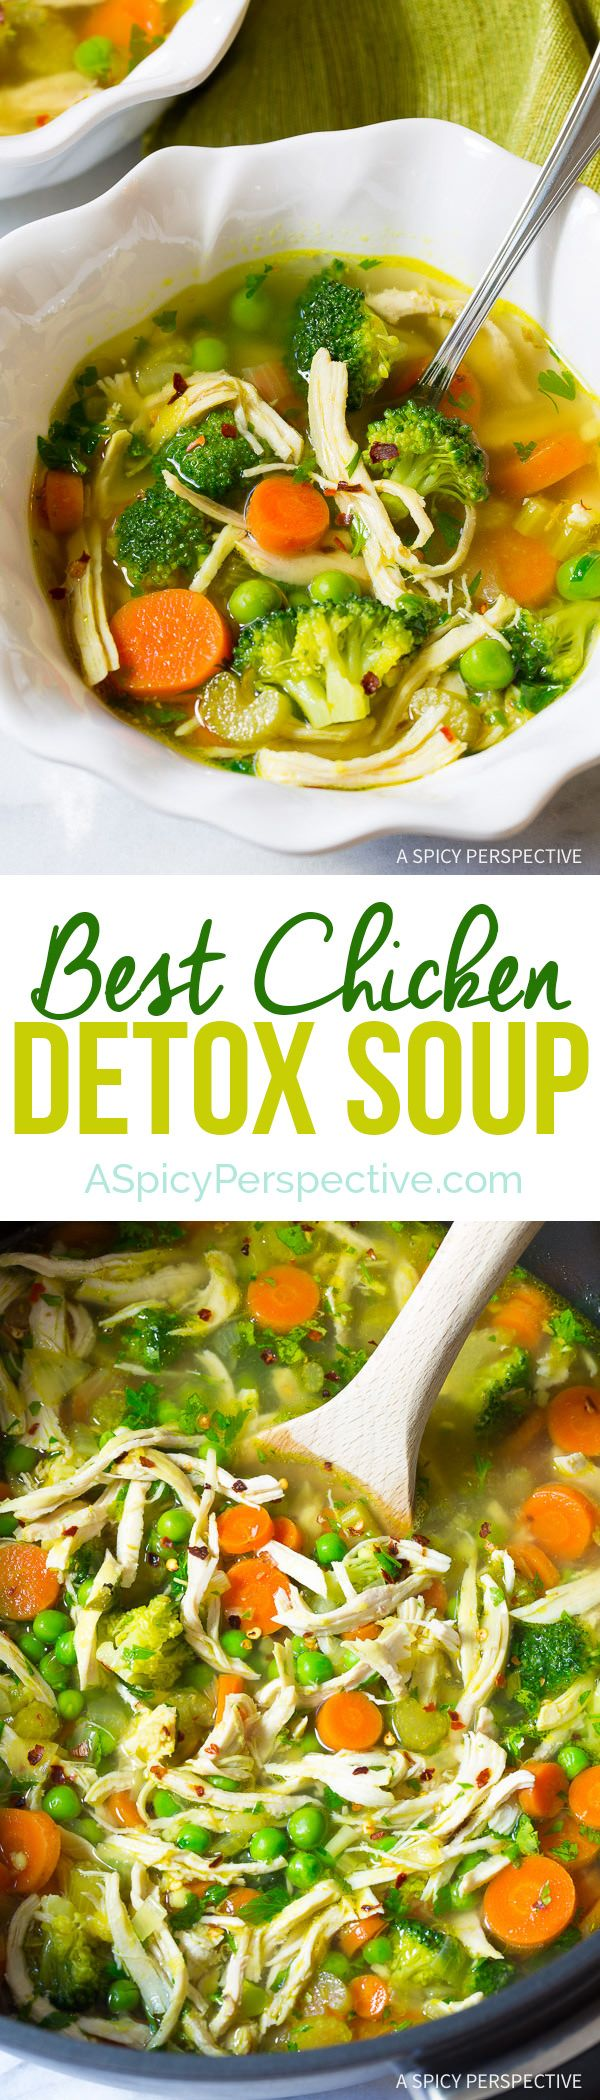 Best Ever Chicken Detox Soup Recipe & Cleanse | ASpicyPerspective.com